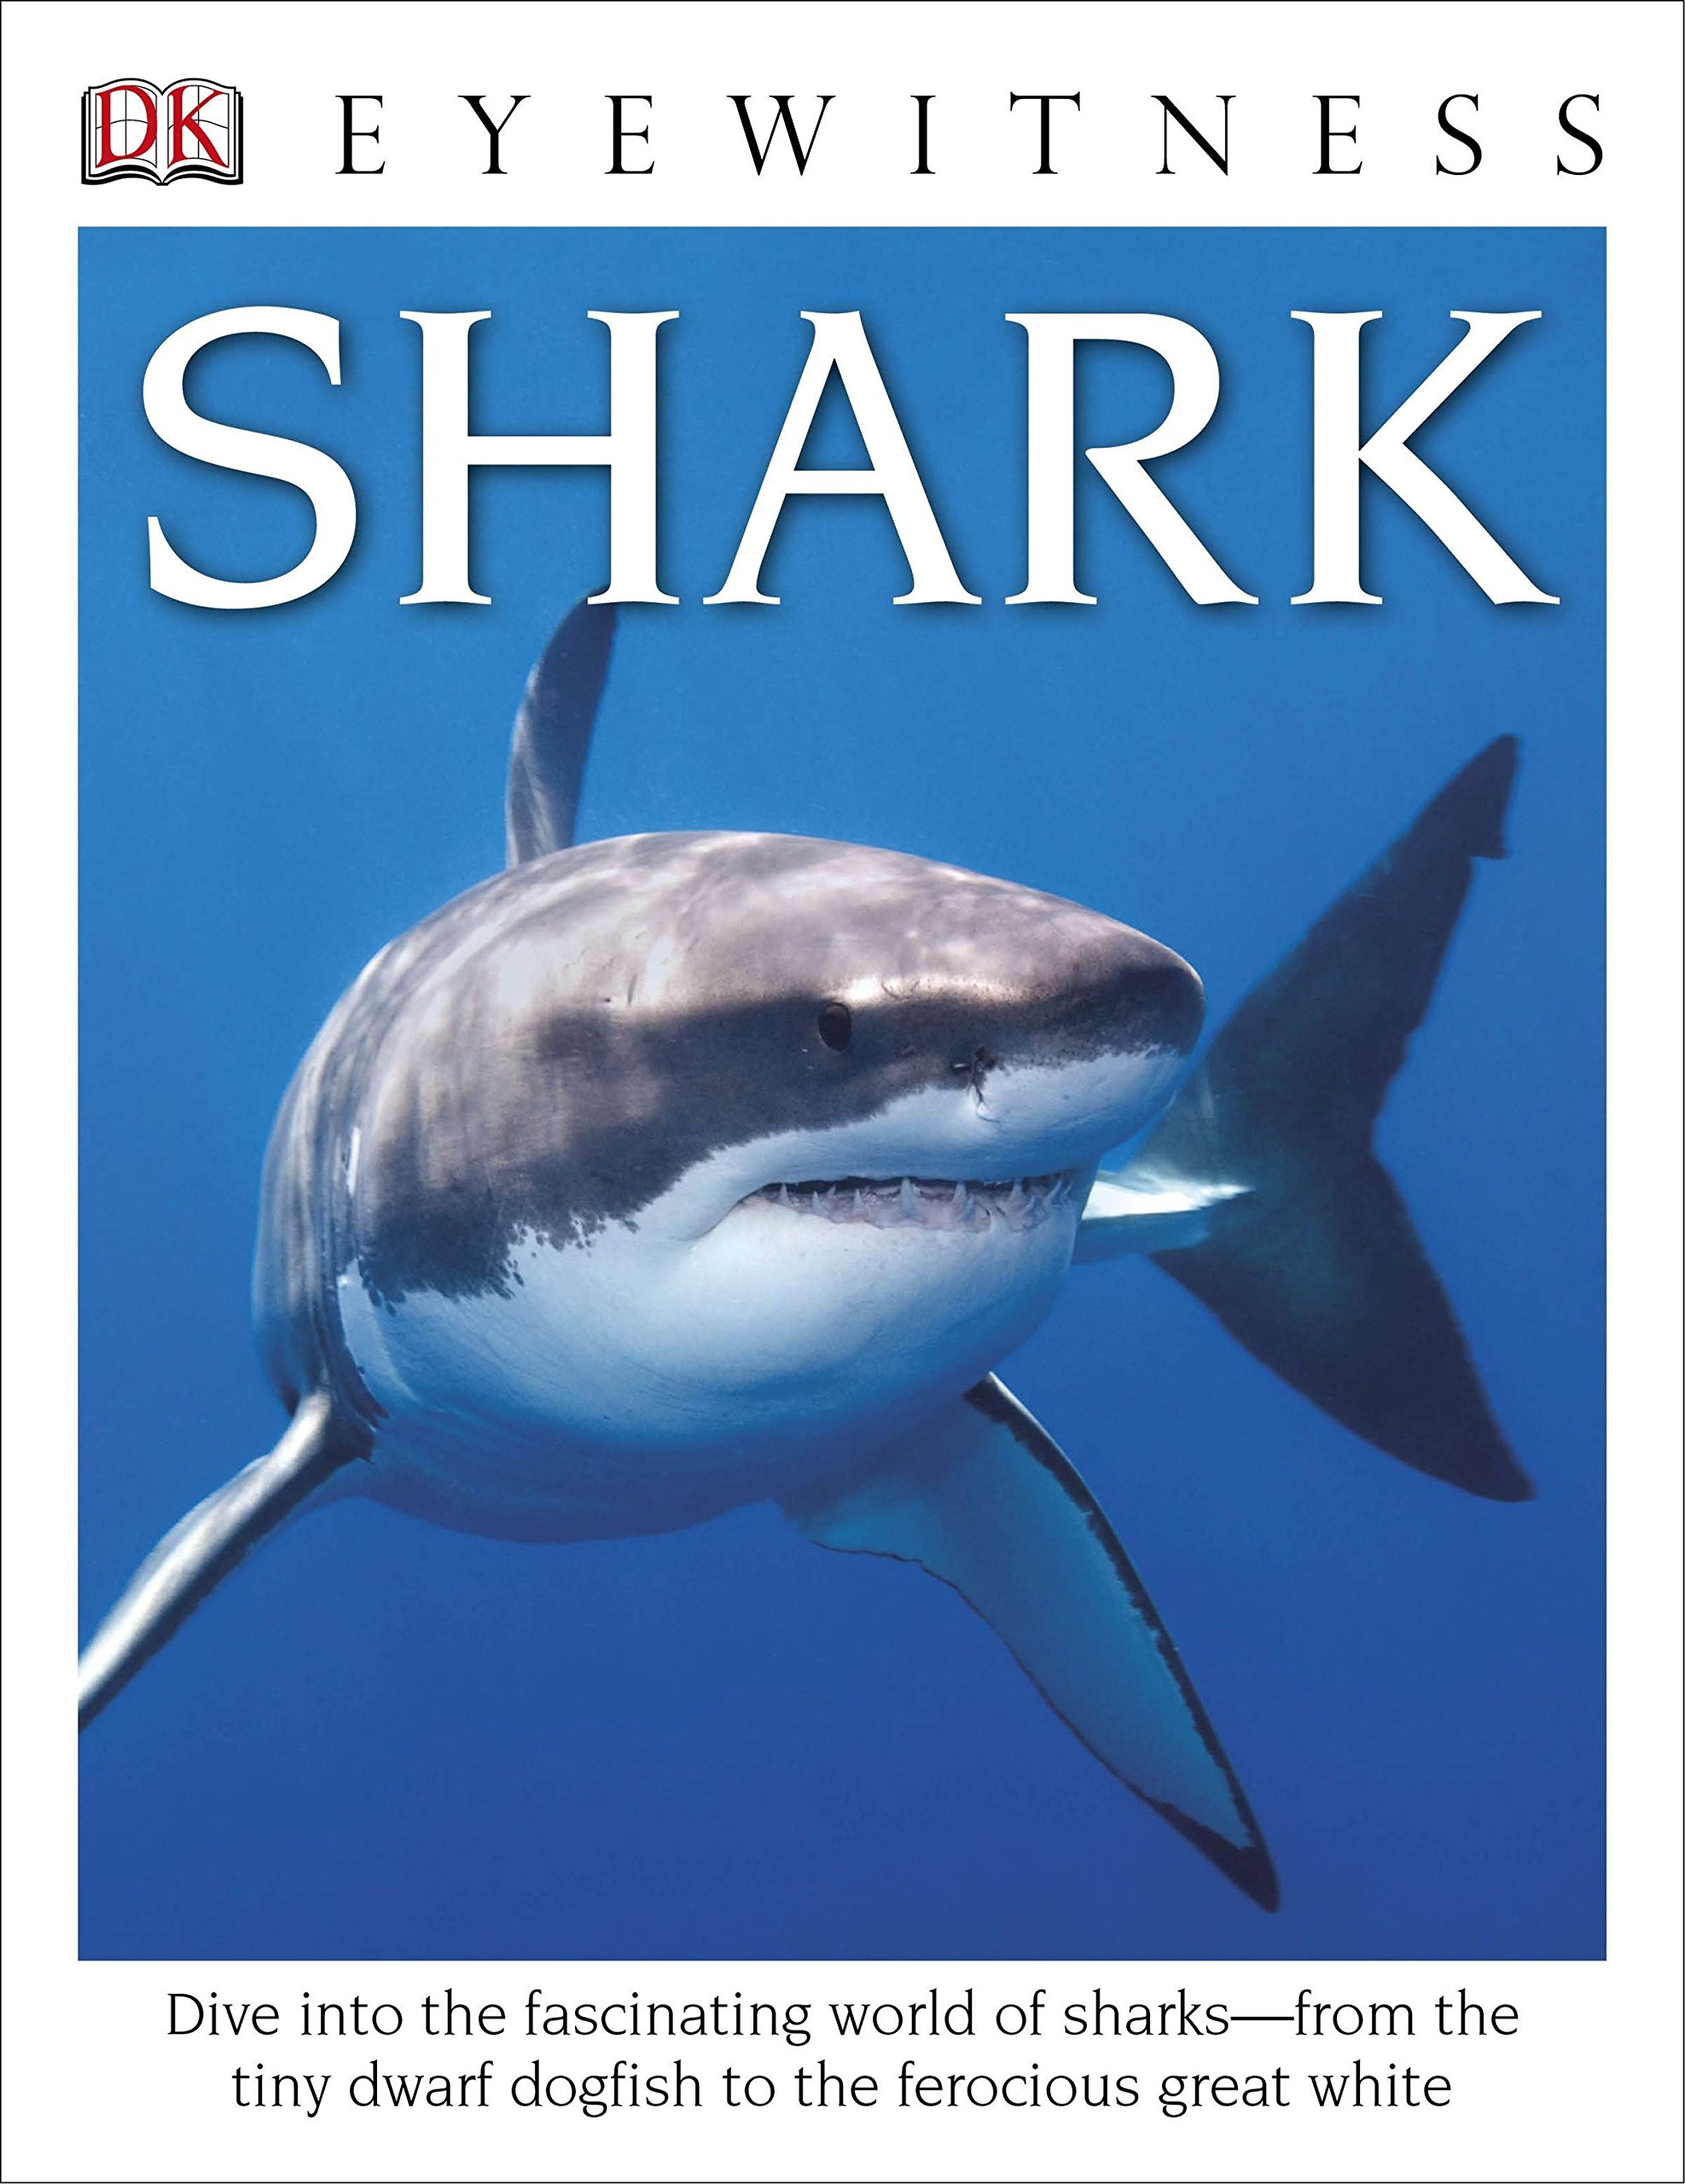 Download DK Eyewitness Books: Shark: Dive into the fascinating world of sharks from the tiny dwarf dogfish to the fer pdf